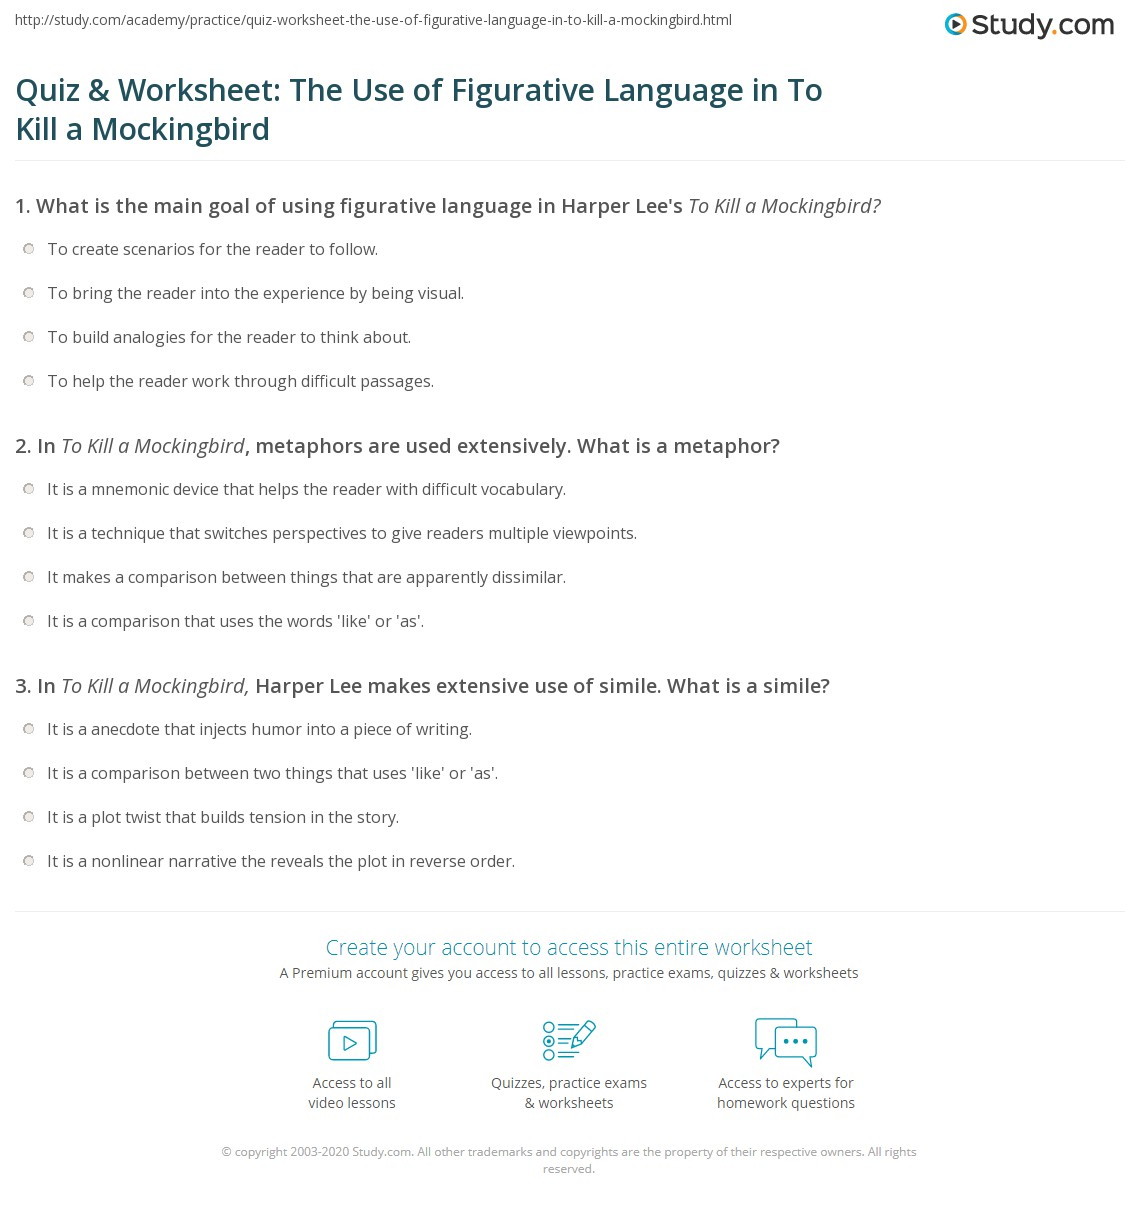 Quiz Worksheet The Use Of Figurative Language In To Kill A